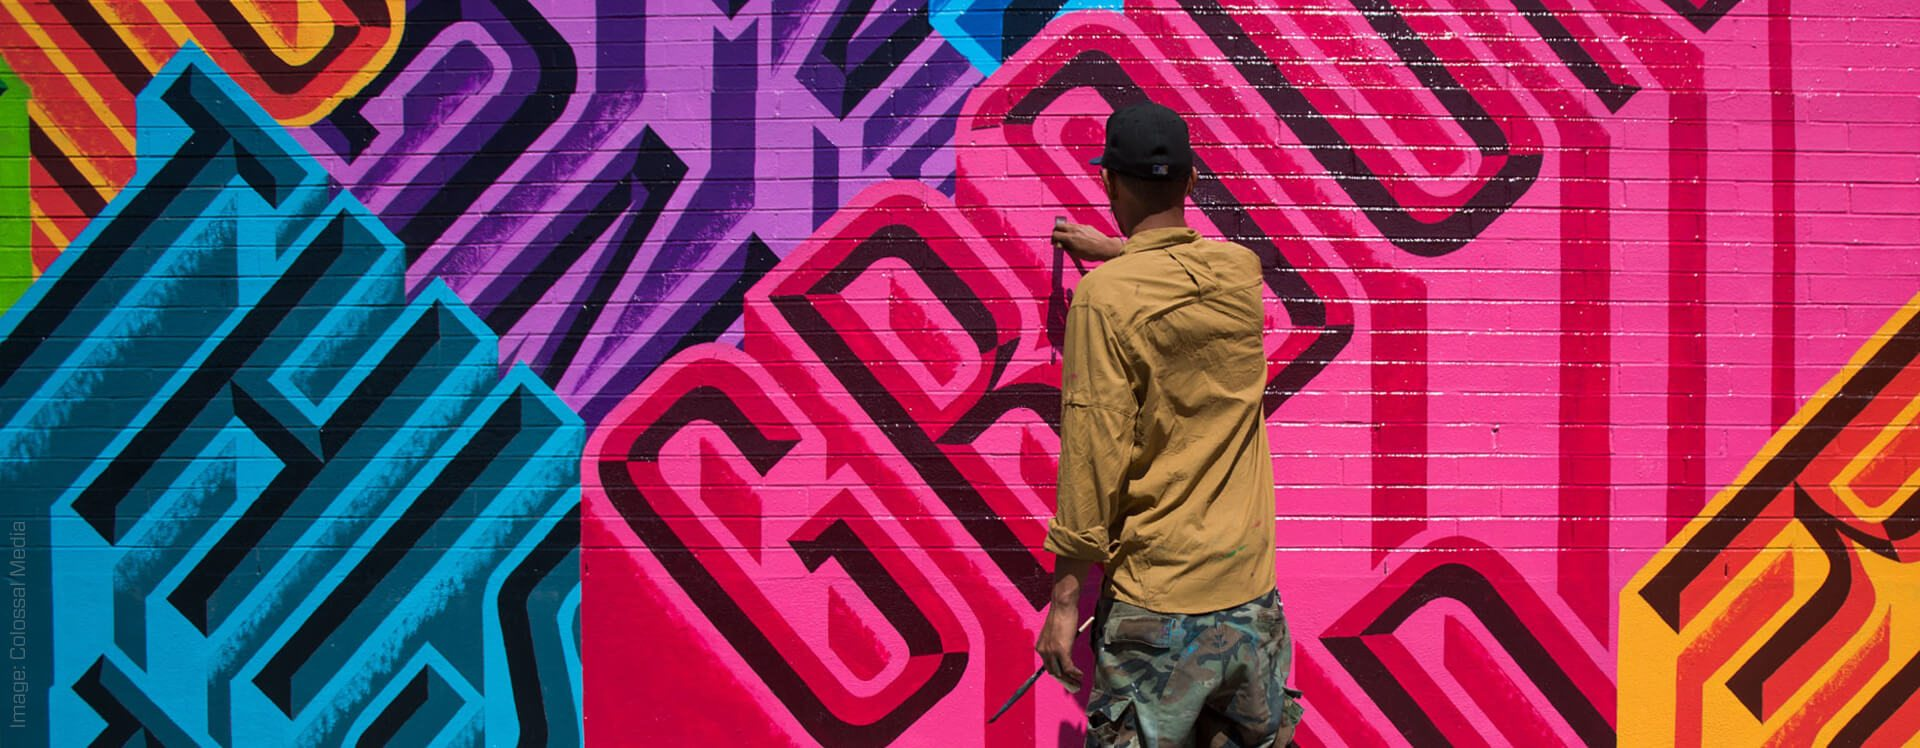 In the age of social media, when brands are searching for ever more meaningful ways to reach their audiences, the hand-painted mural has proven (once again) to be both transformative and a captivating social media magnet.